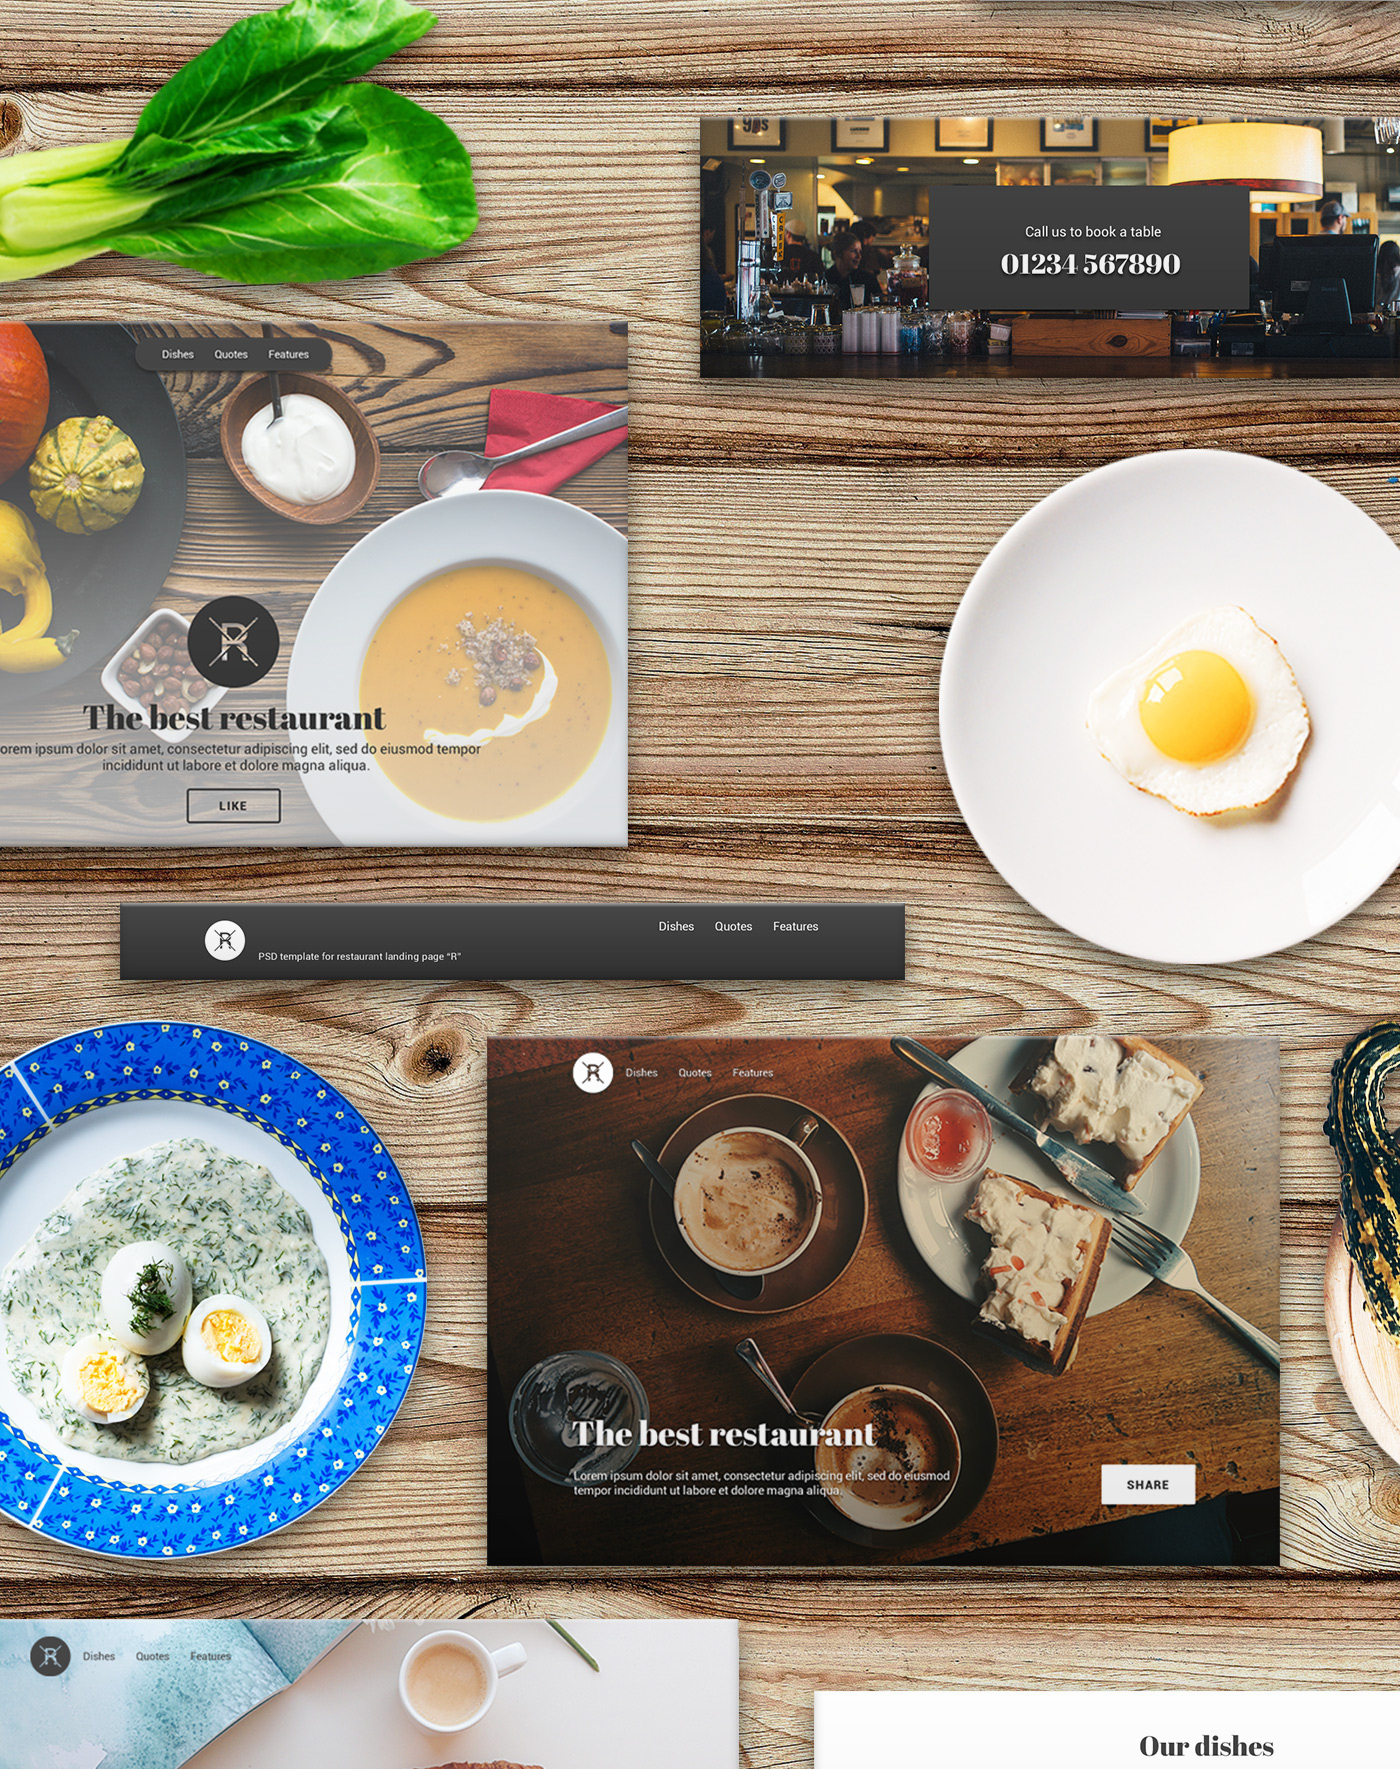 landing,page,UI,restaurant,cafe,Food ,psd,free,freebies,template,block,photoshop,cover,slider,ui lit